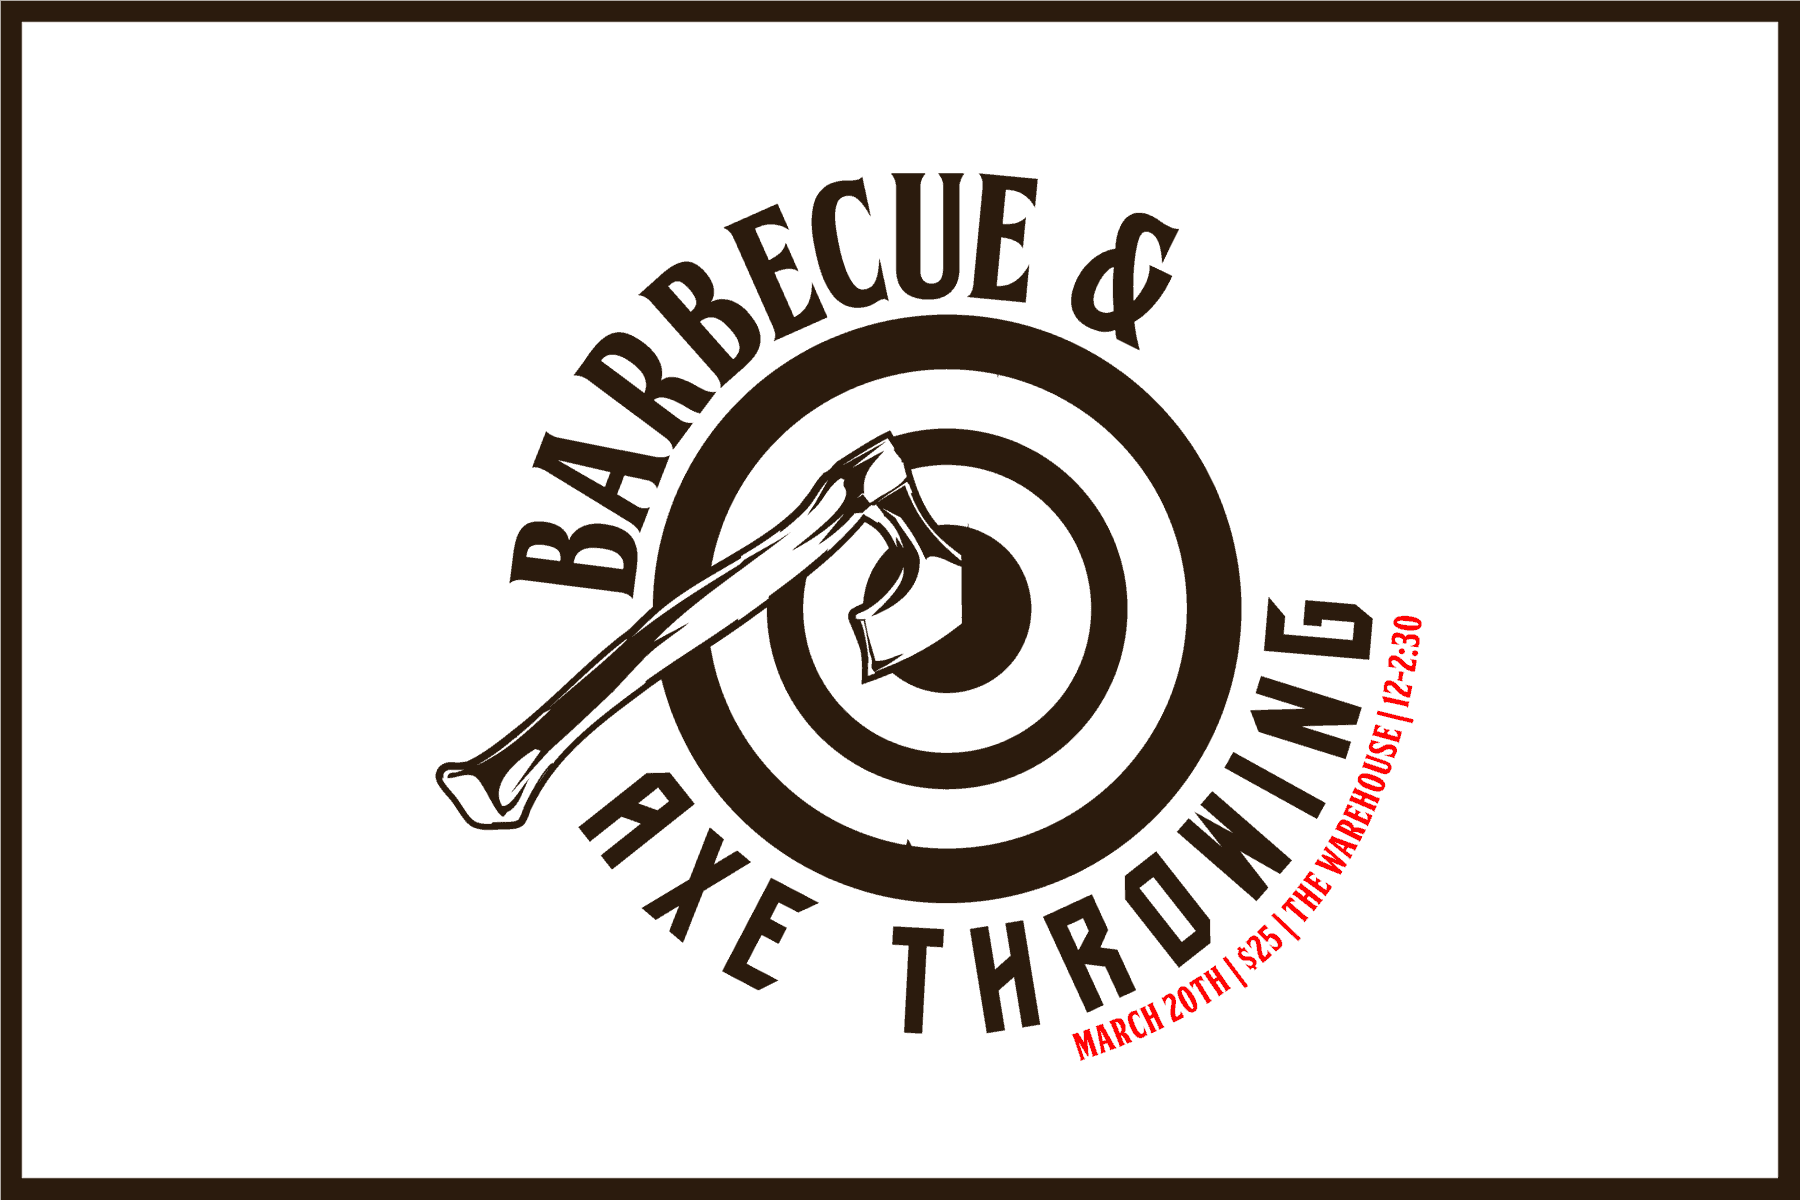 barbecue-and-axe-throwing